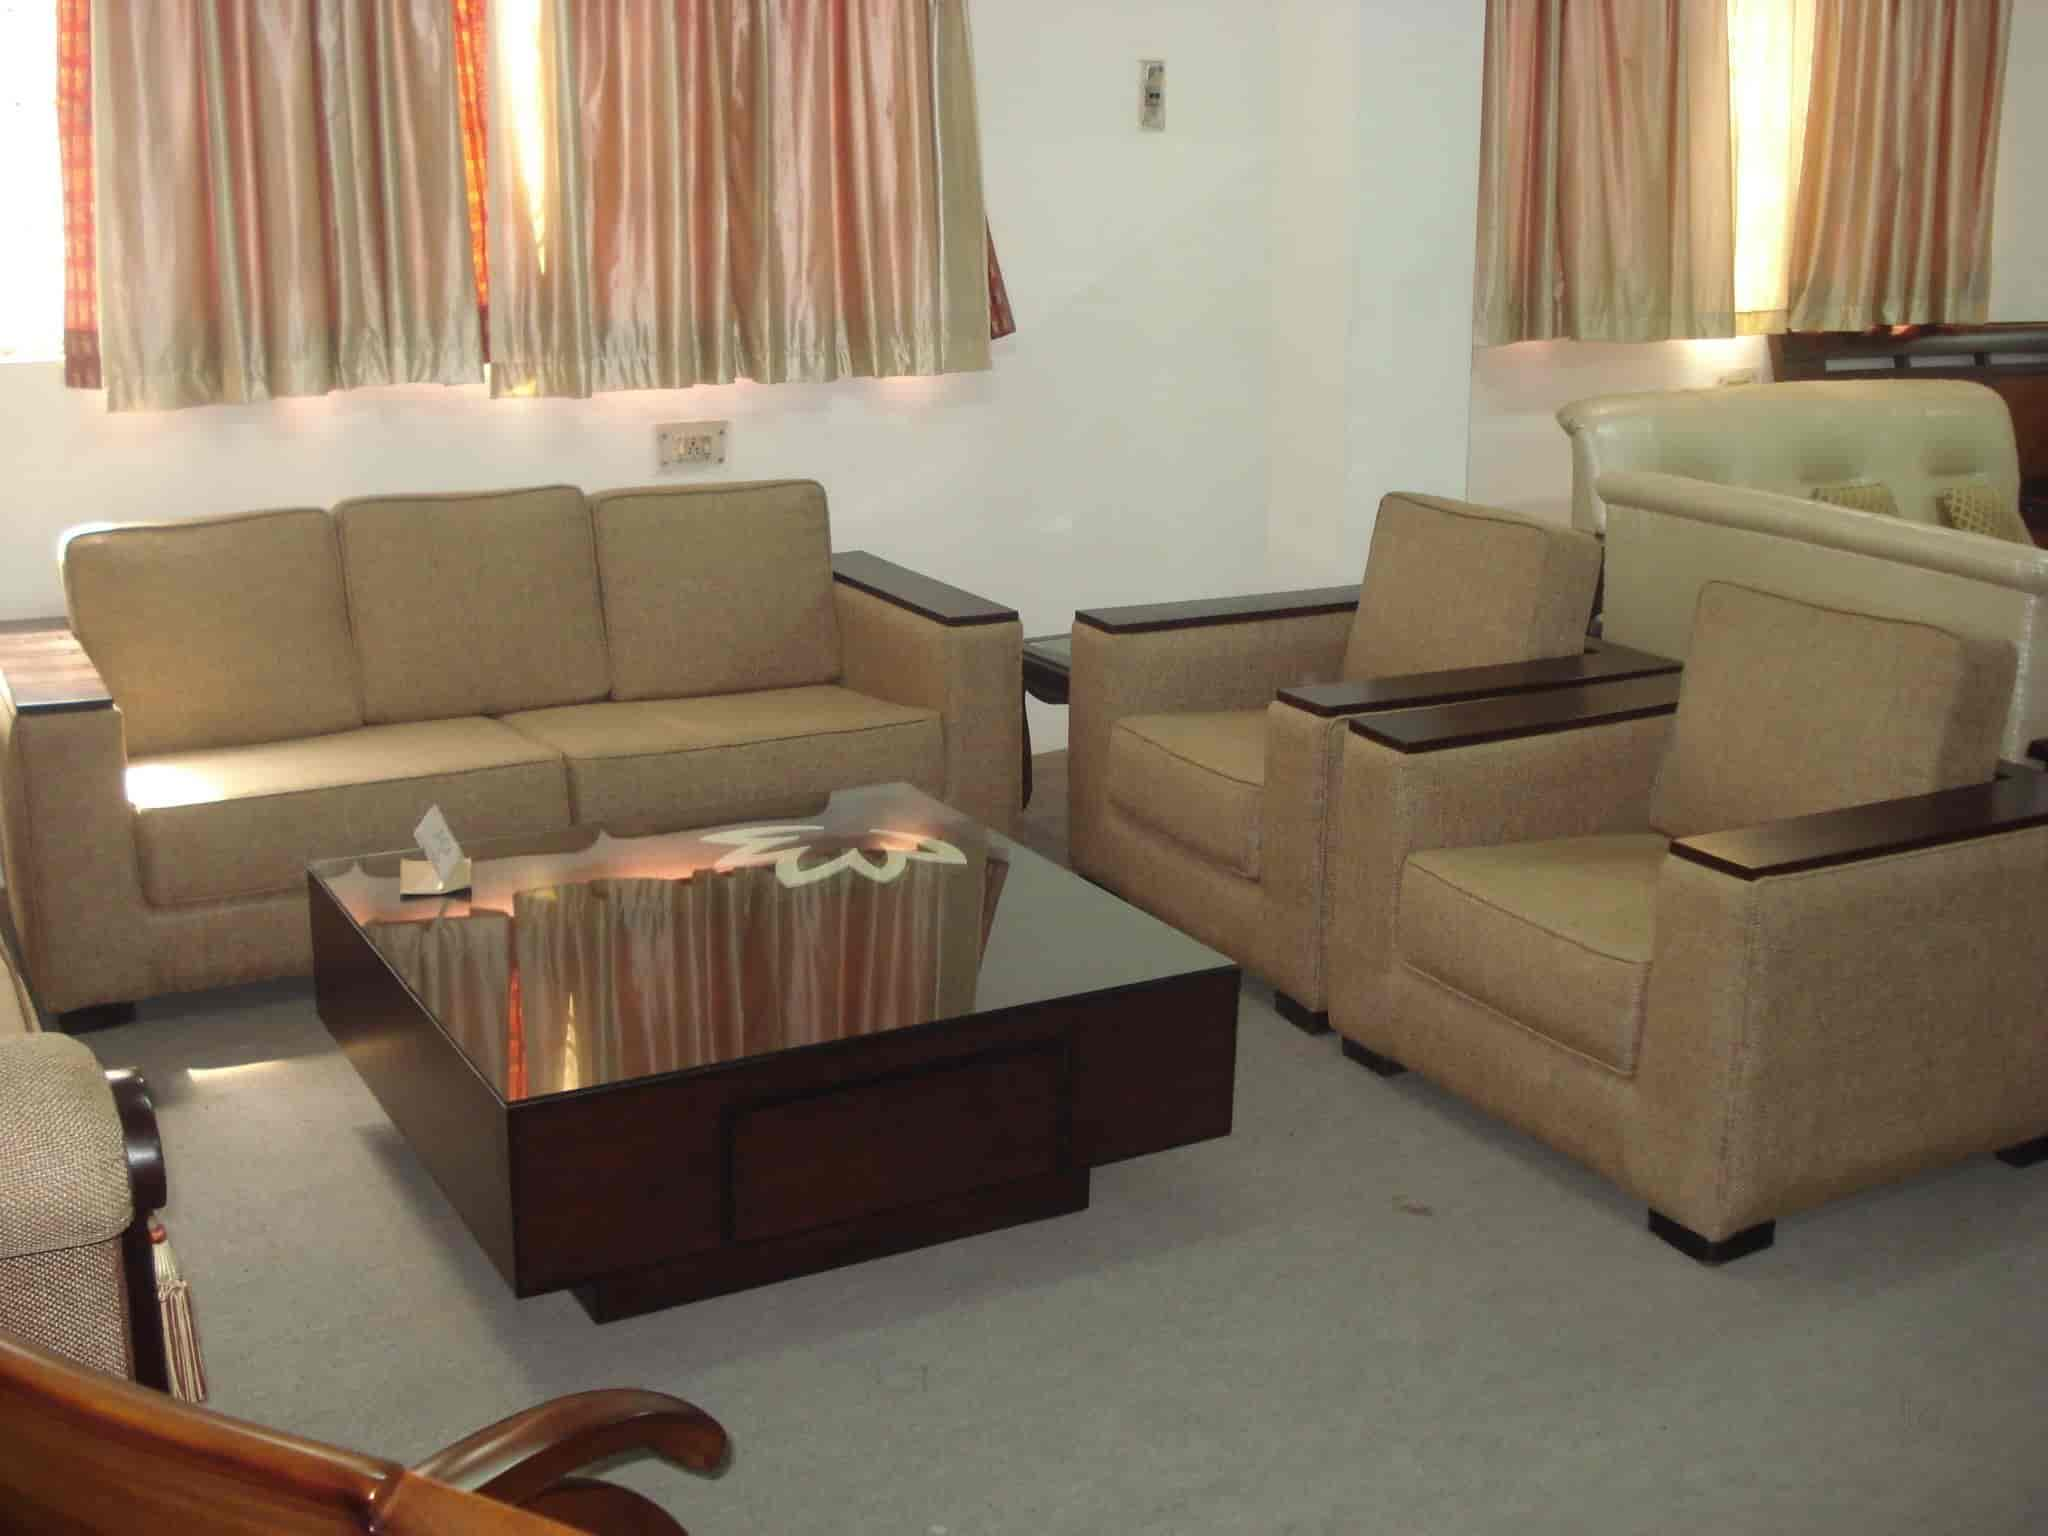 Sofa Set Repair Services In Porur Sofa Factory The Large Sized Apartment Sofa Simple Modern